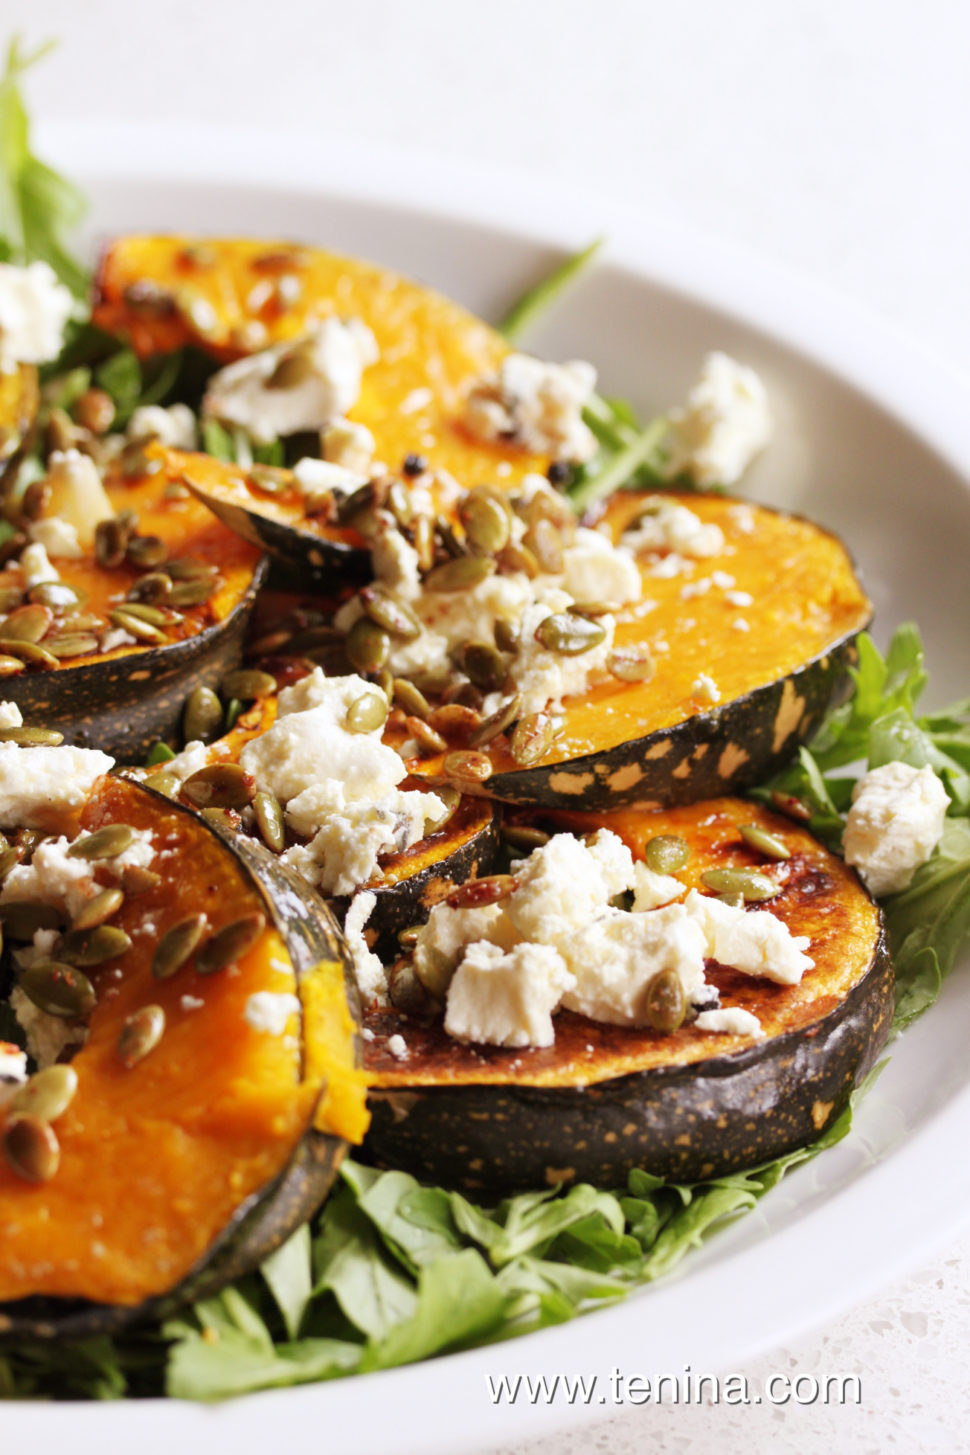 Thermomix recipe: Roasted Pumpkin Salad · Tenina.com